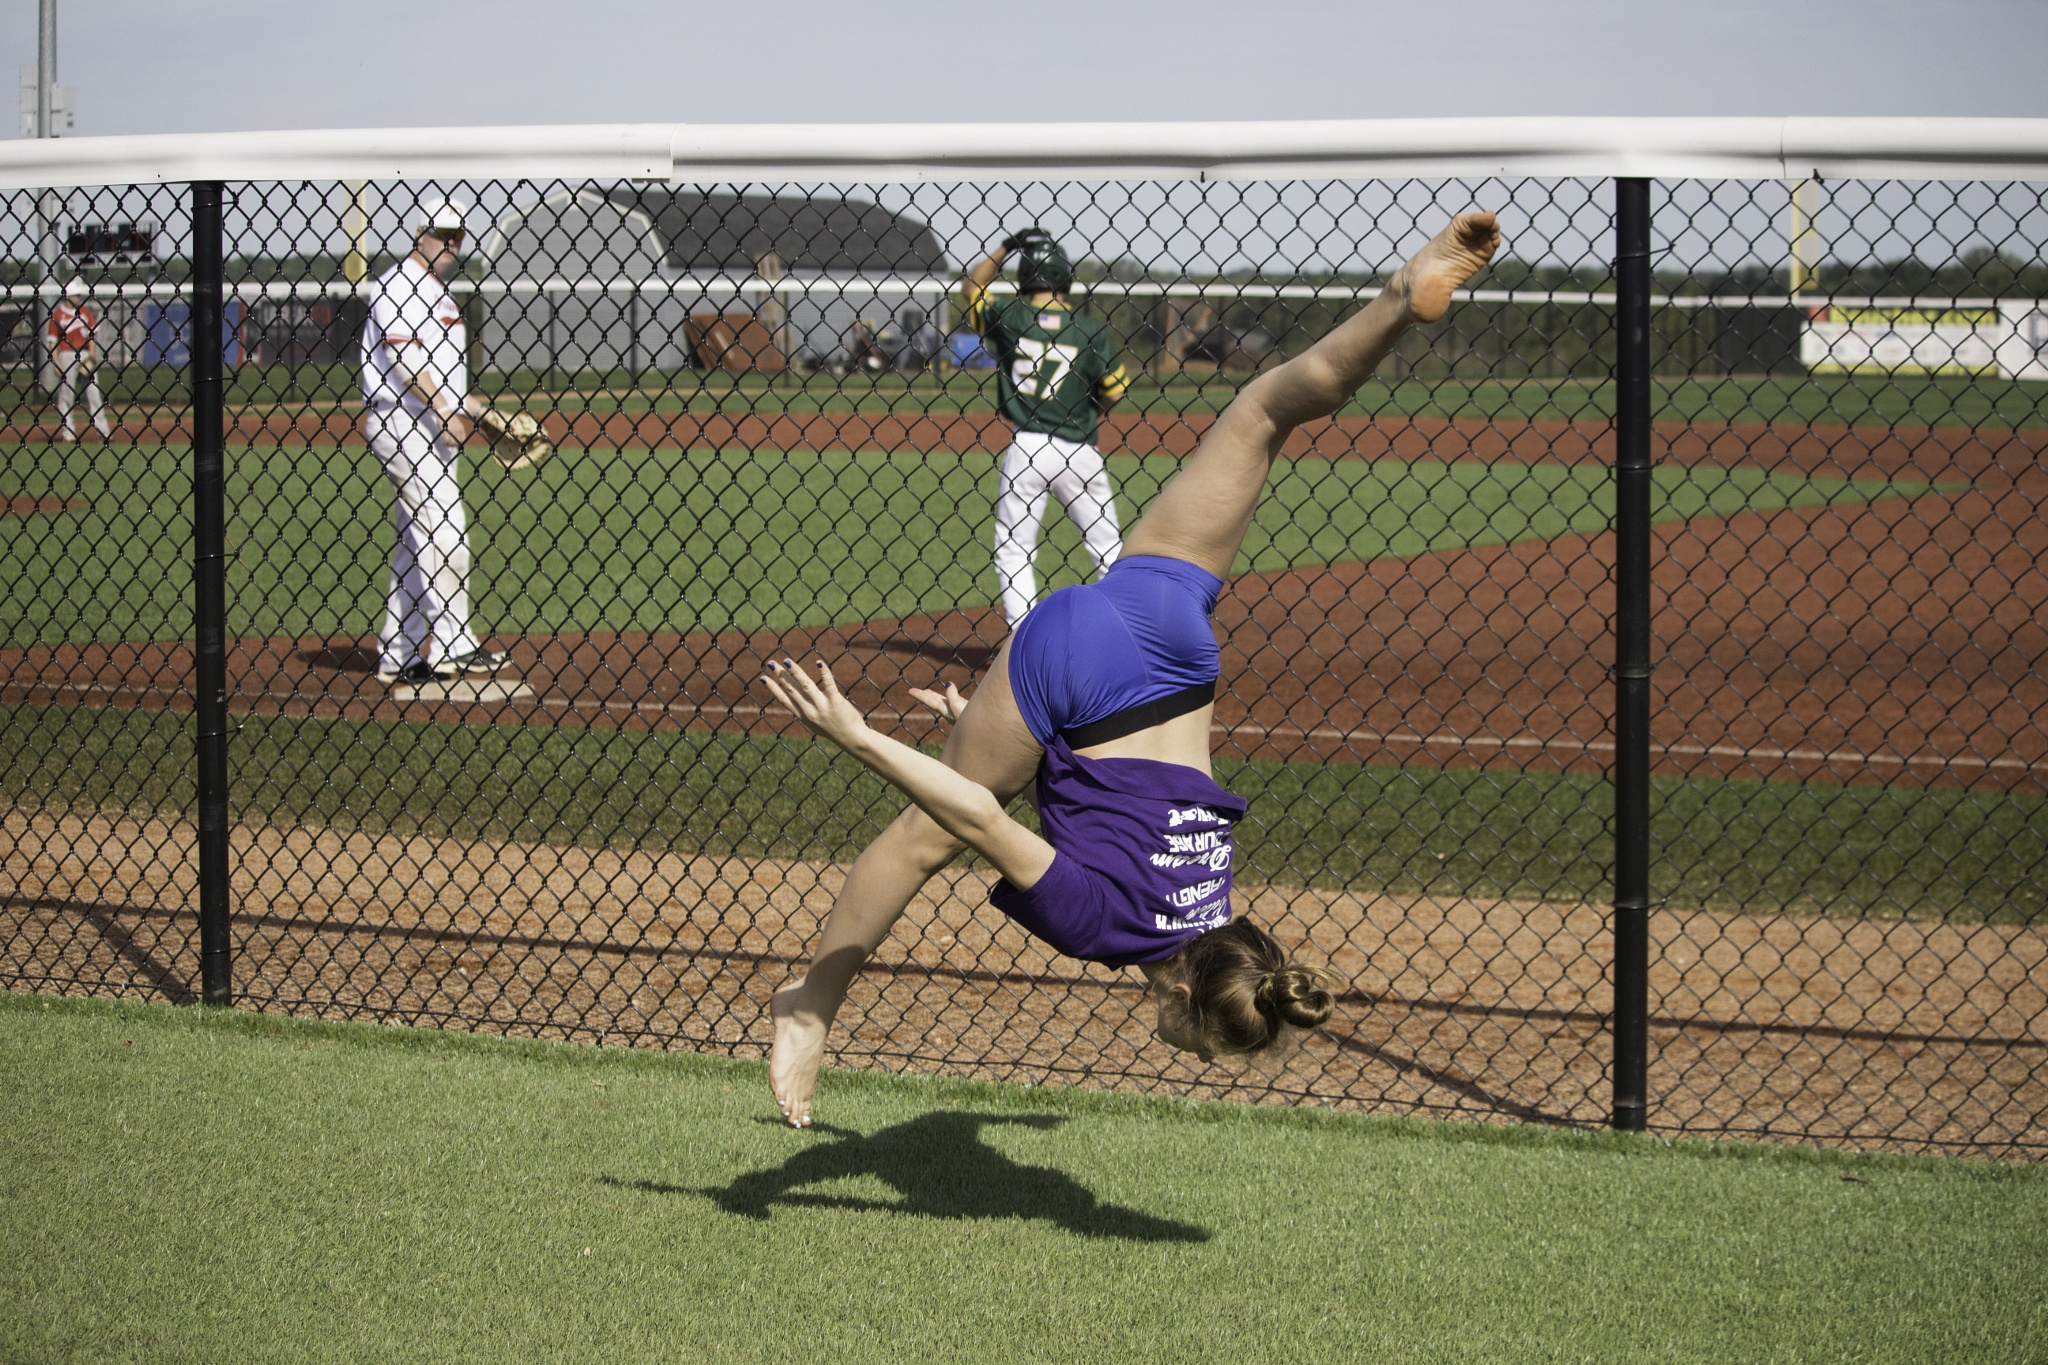 Flipping at the Ballfield by Danny V Photography